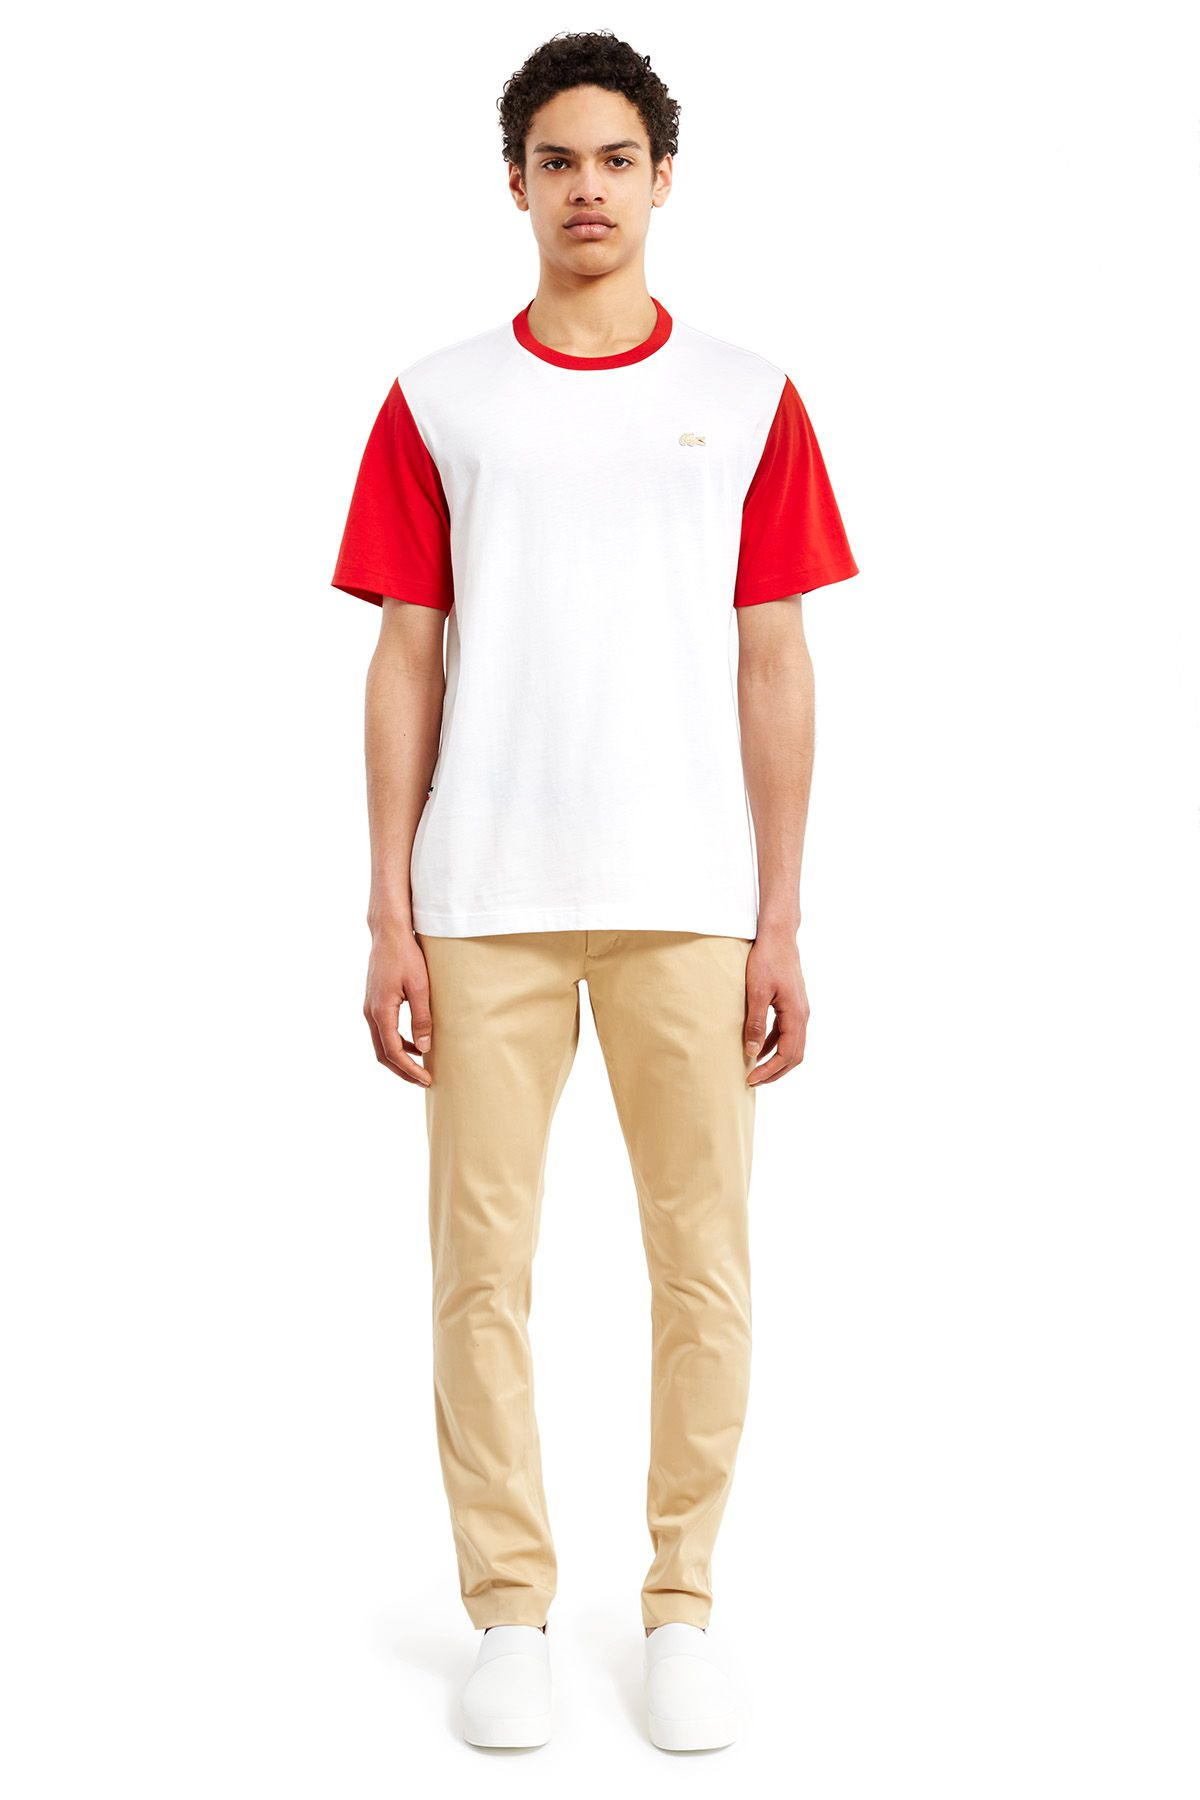 Lacoste x Opening Ceremony red and white tee